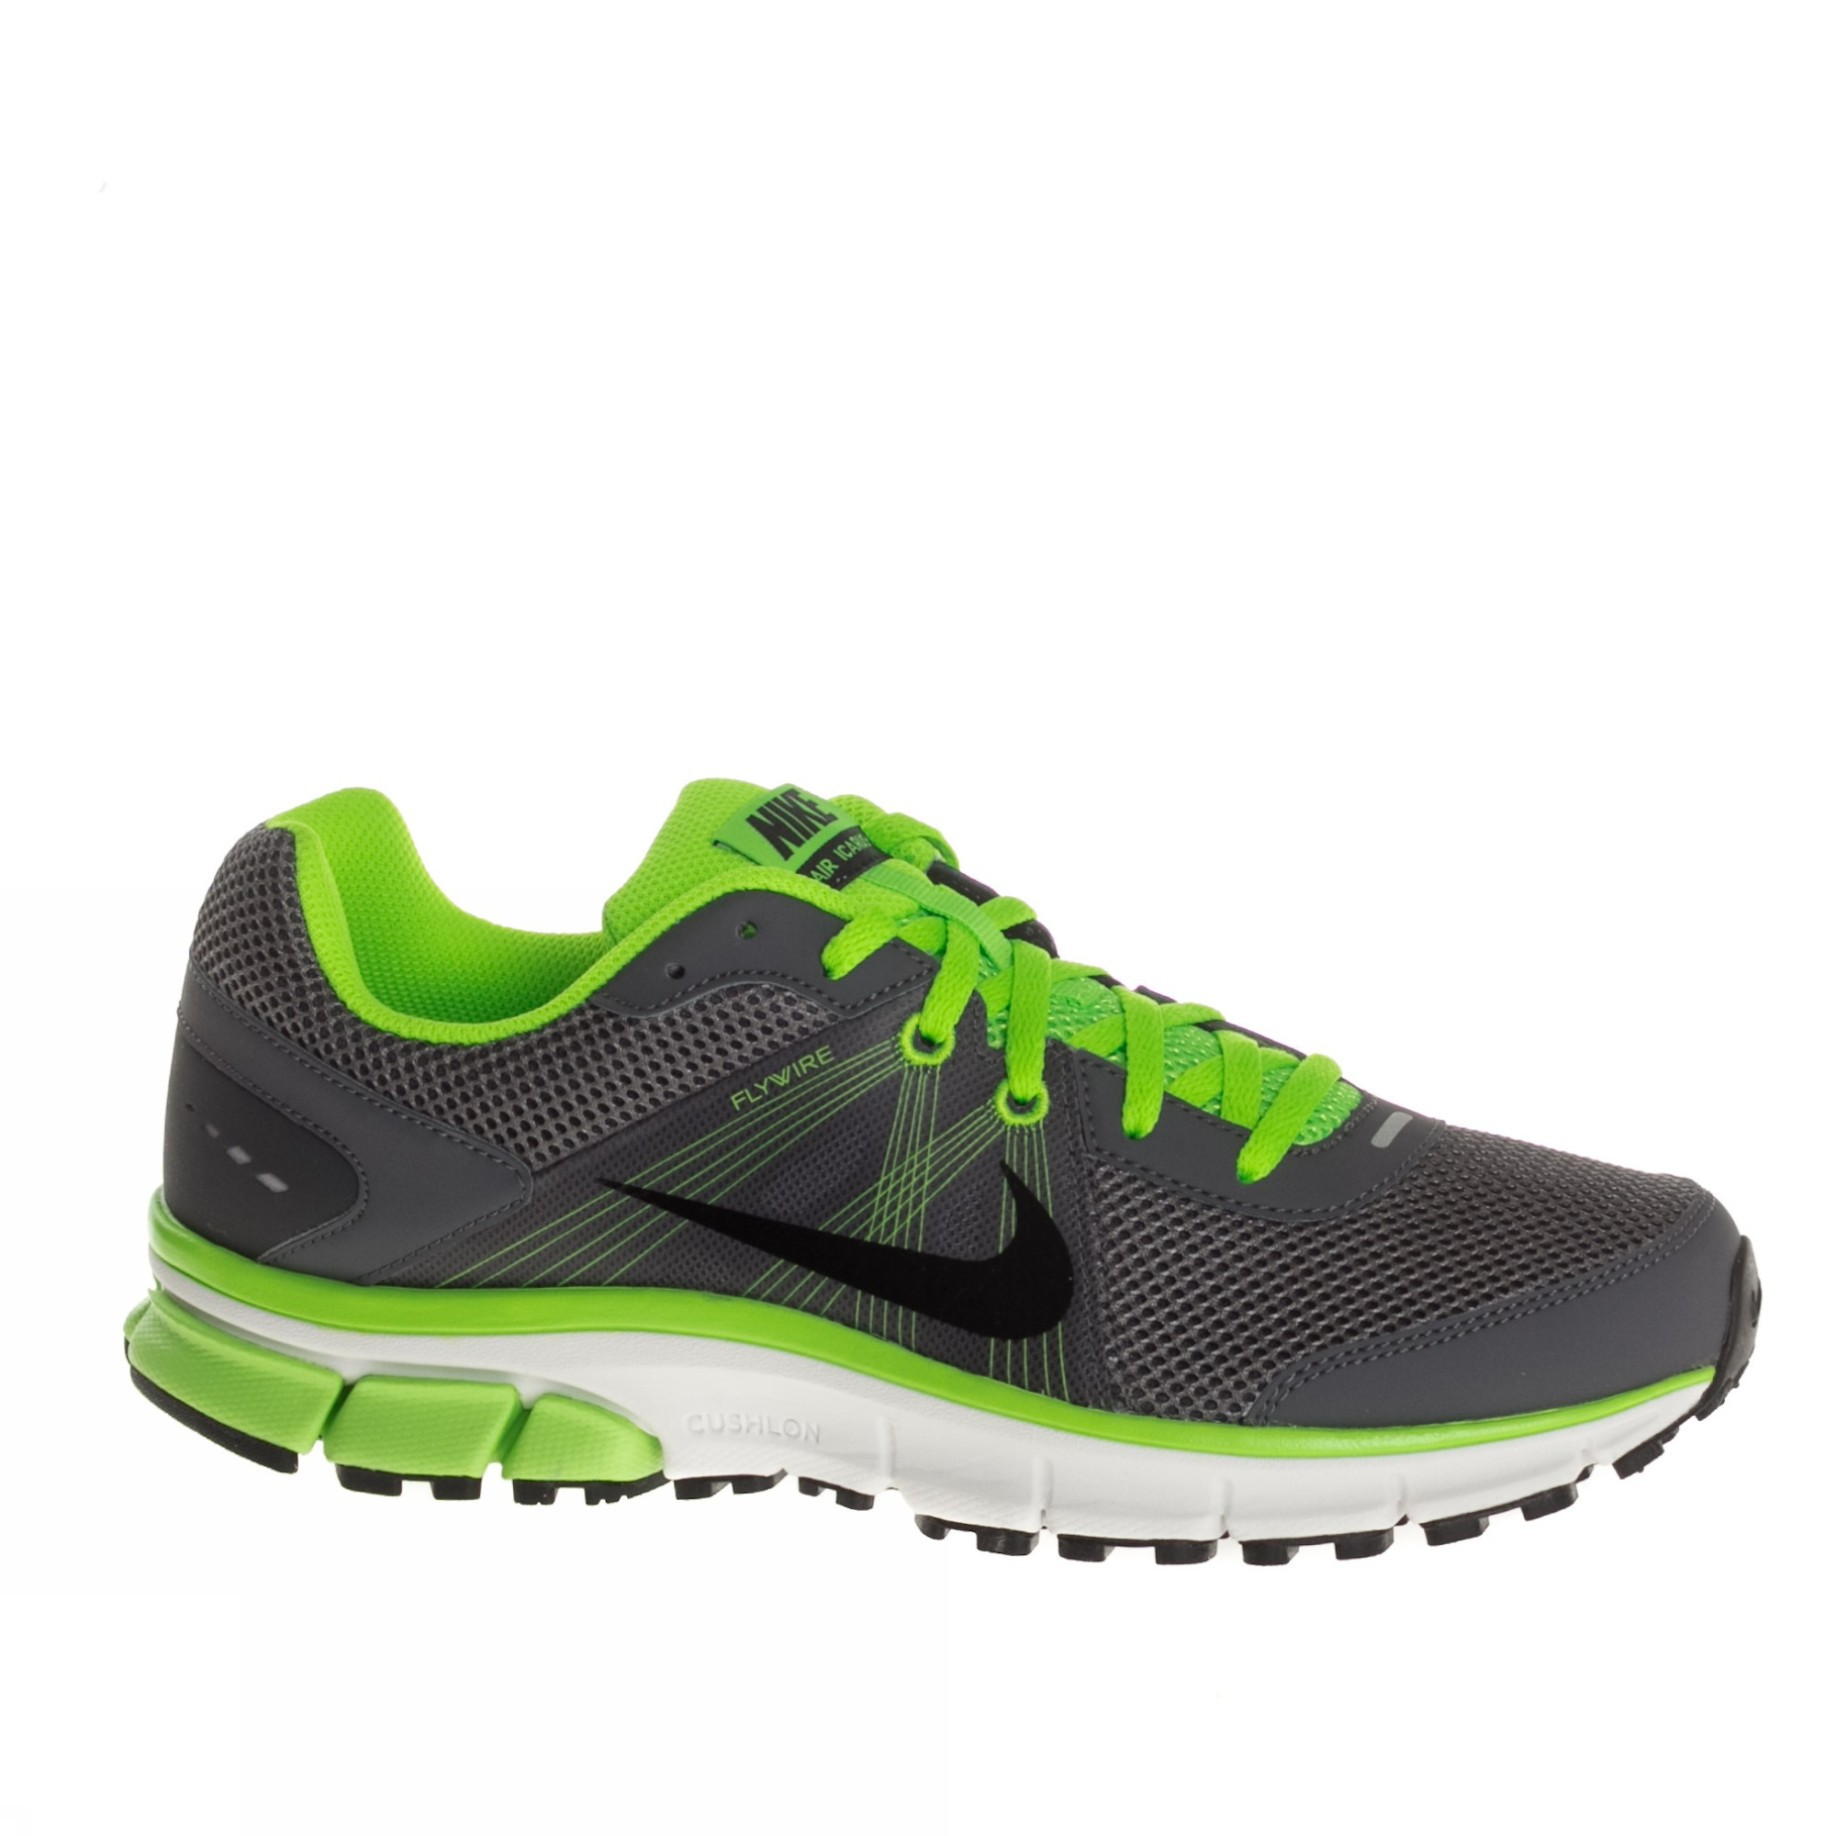 low priced 0d168 fac88 Air Icarus colore Grey Yellow - Nike - SportIT.com